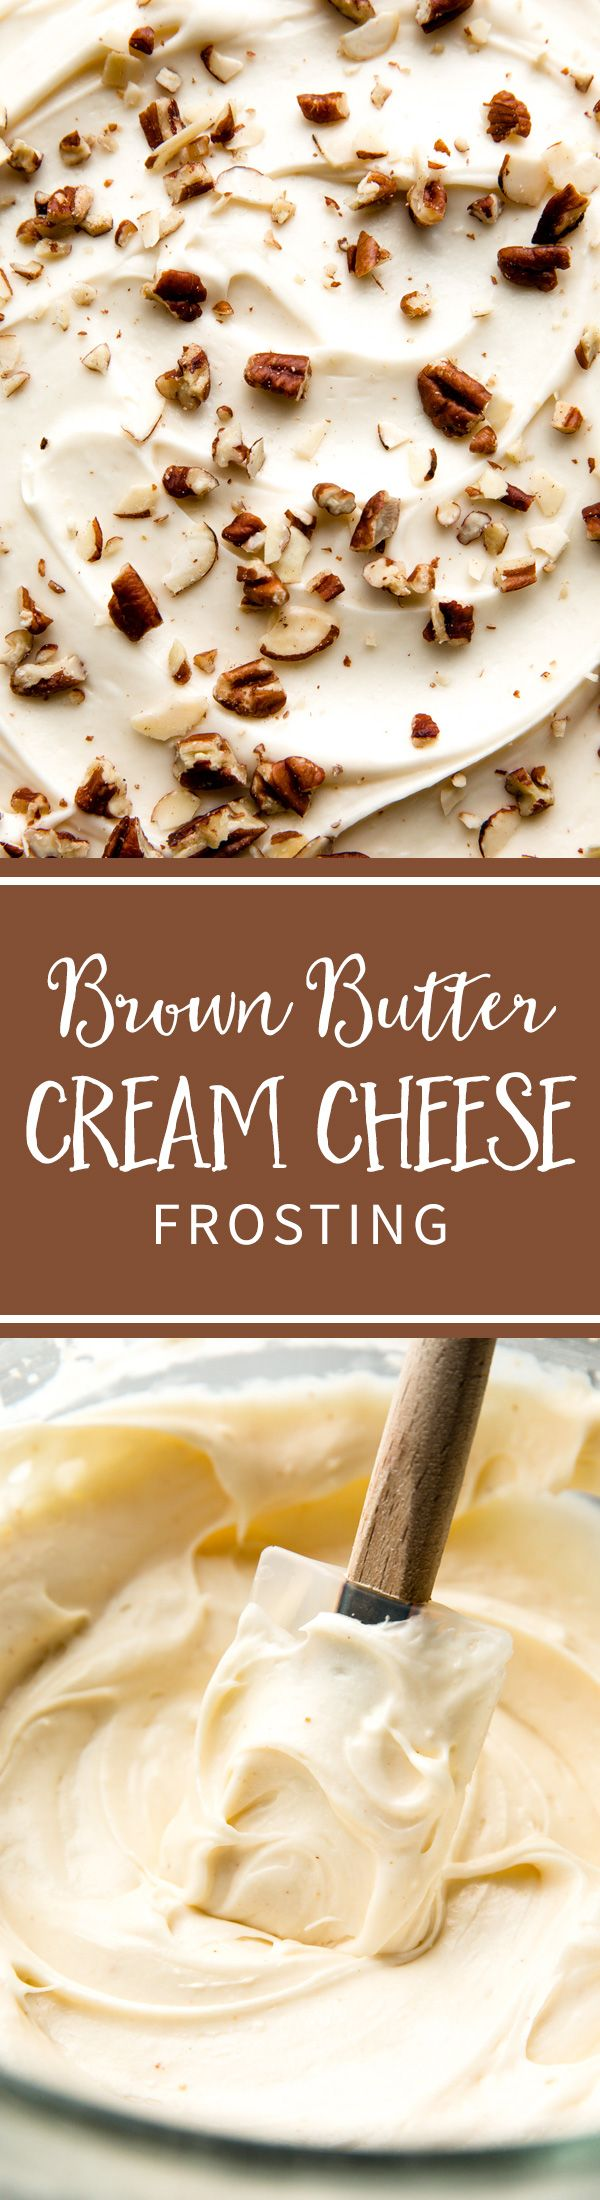 Brown butter cream cheese frosting!! So easy to make and incredibly delicious! Recipe on sallysbakingaddiction.com